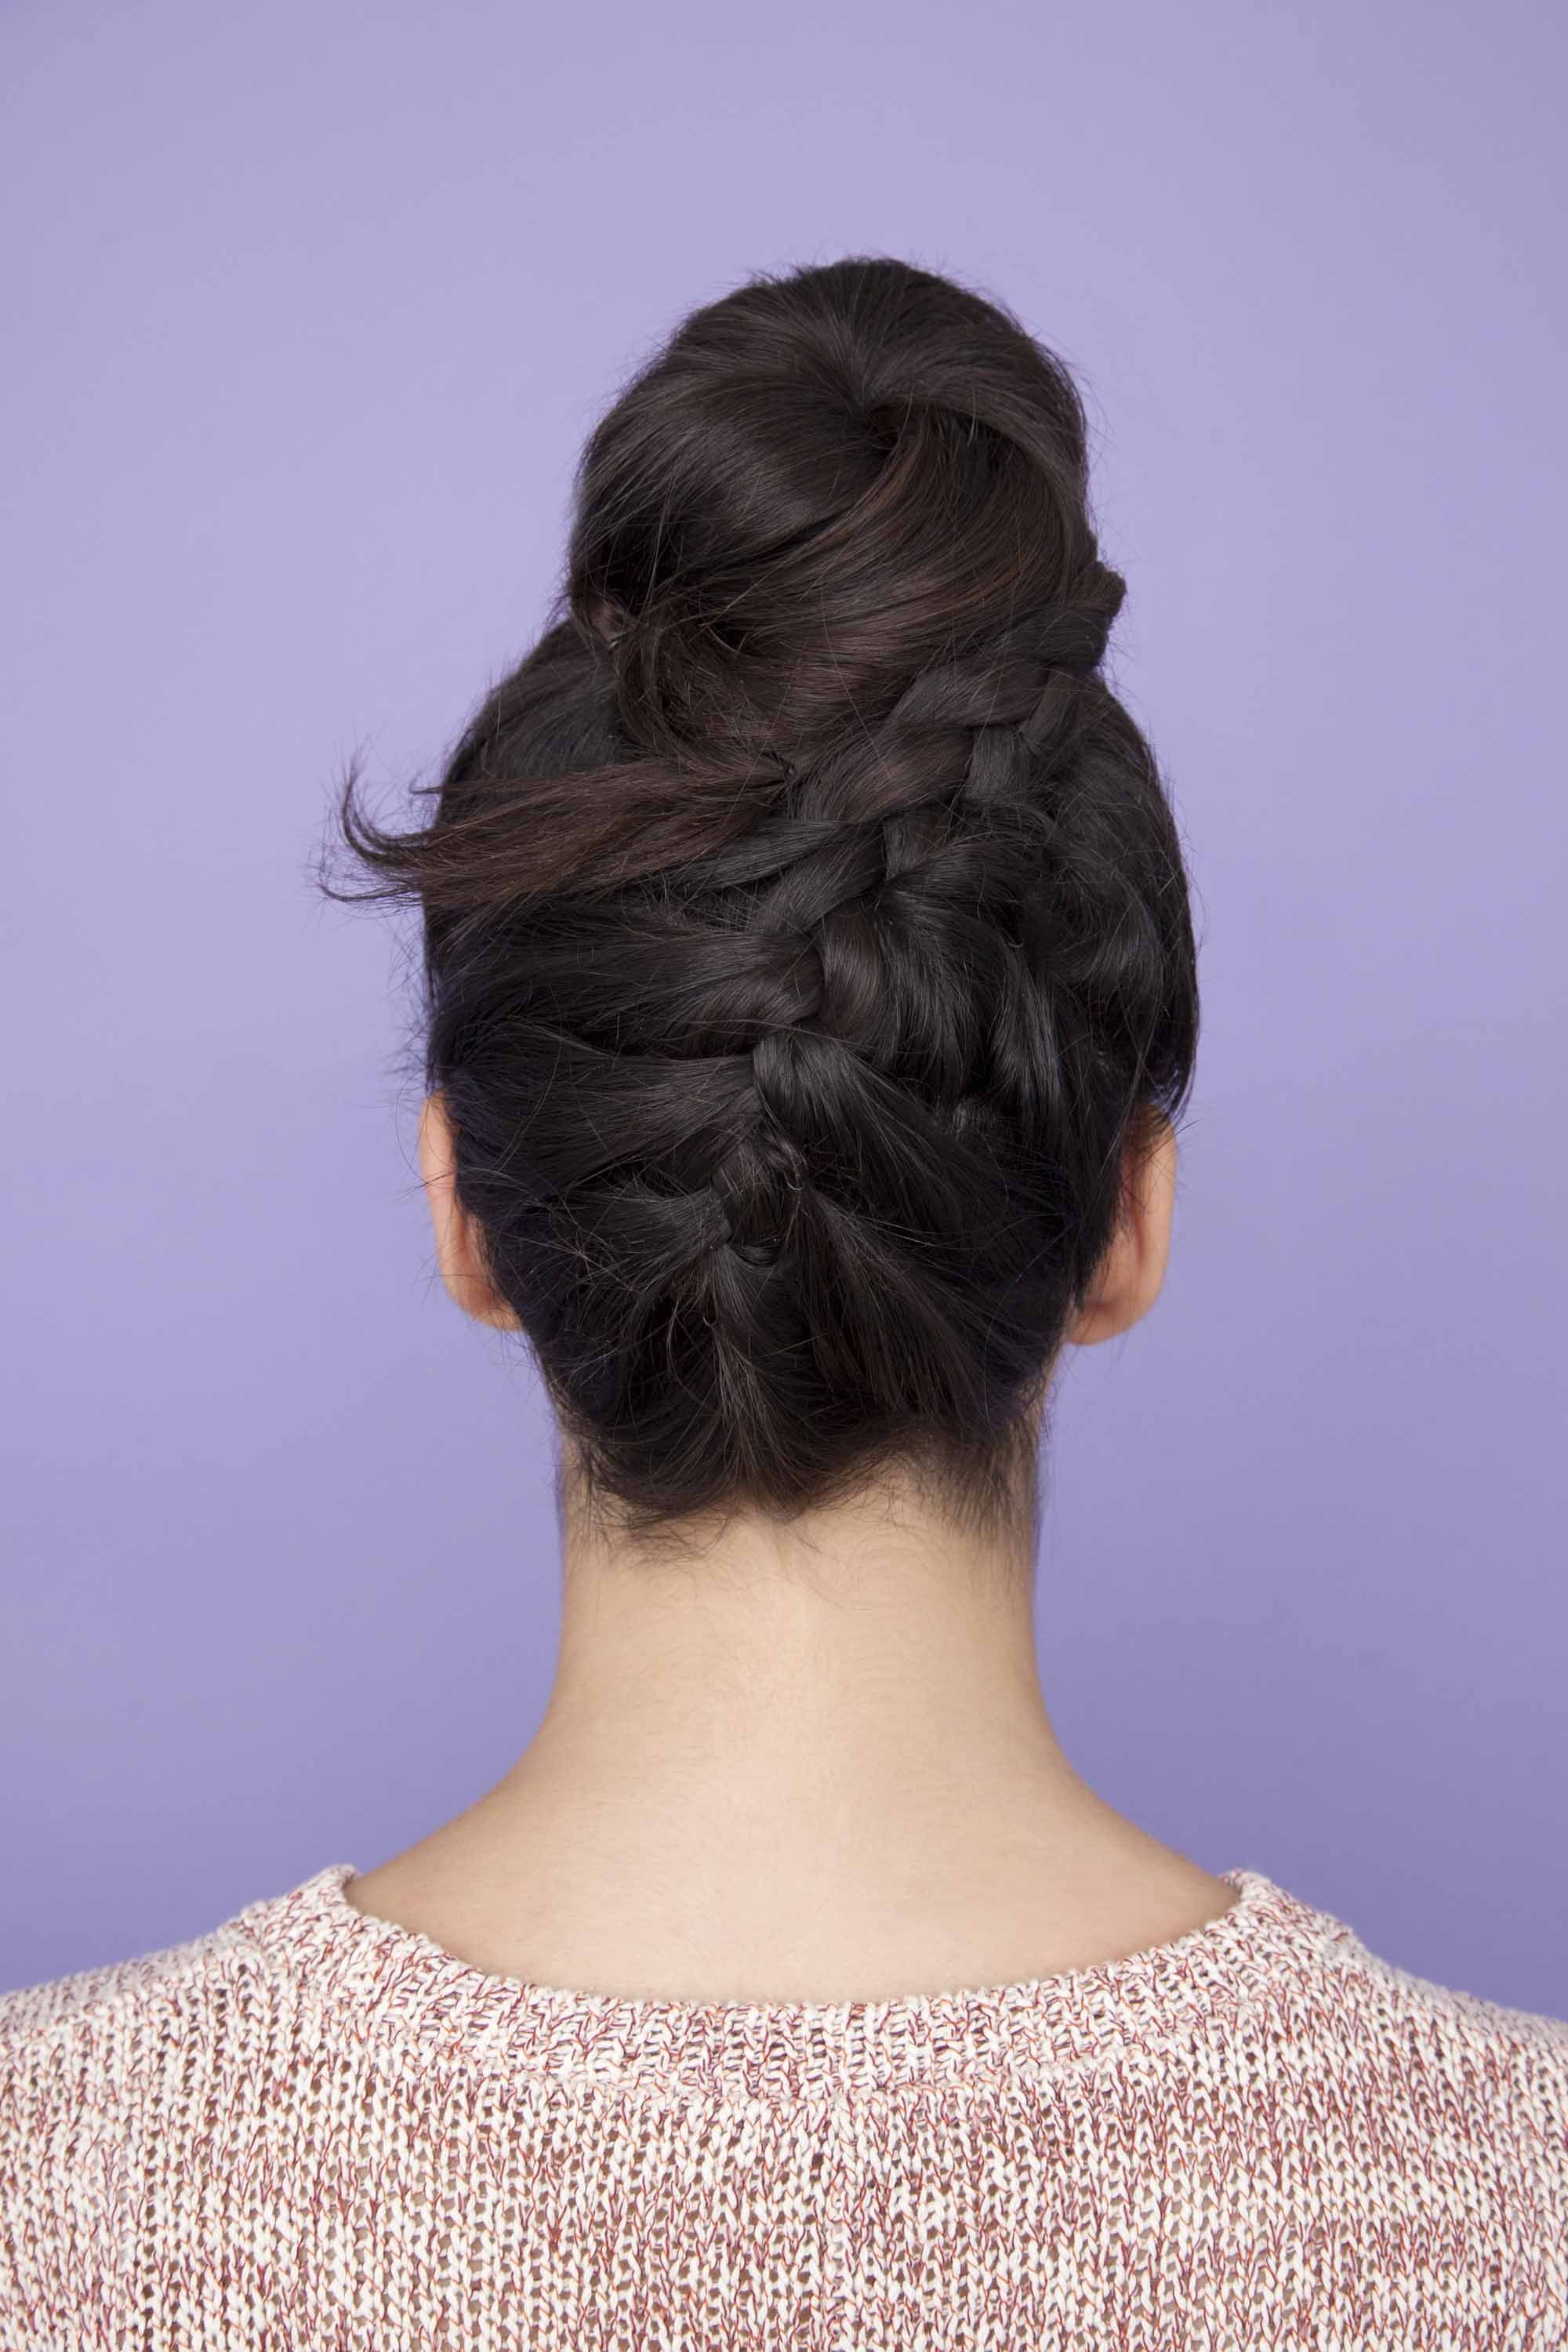 The Best Easy Going Out Hairstyles That You Can Do Last Minute Pictures